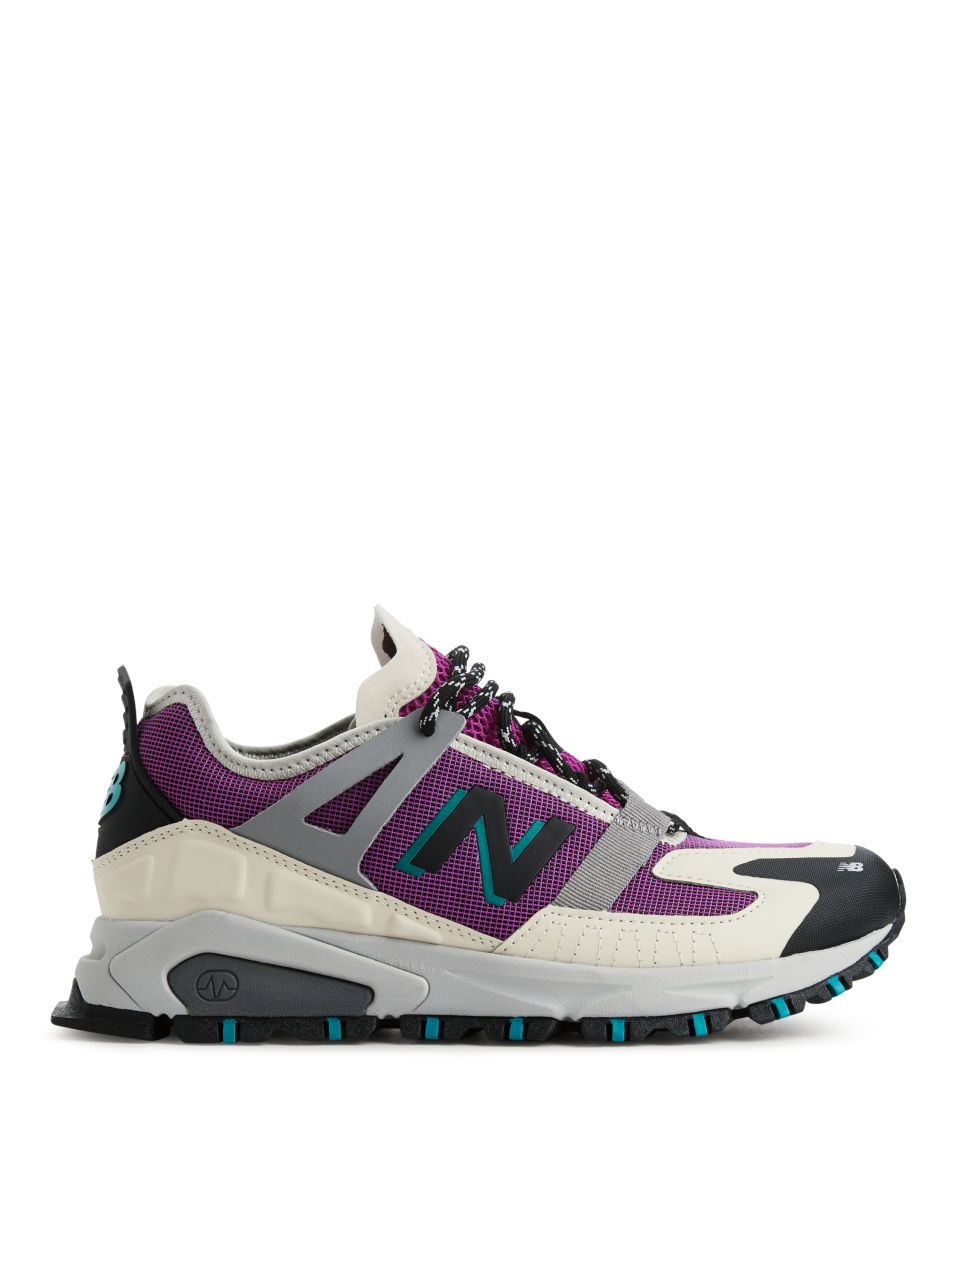 New Balance XRCT Trainers - Pink